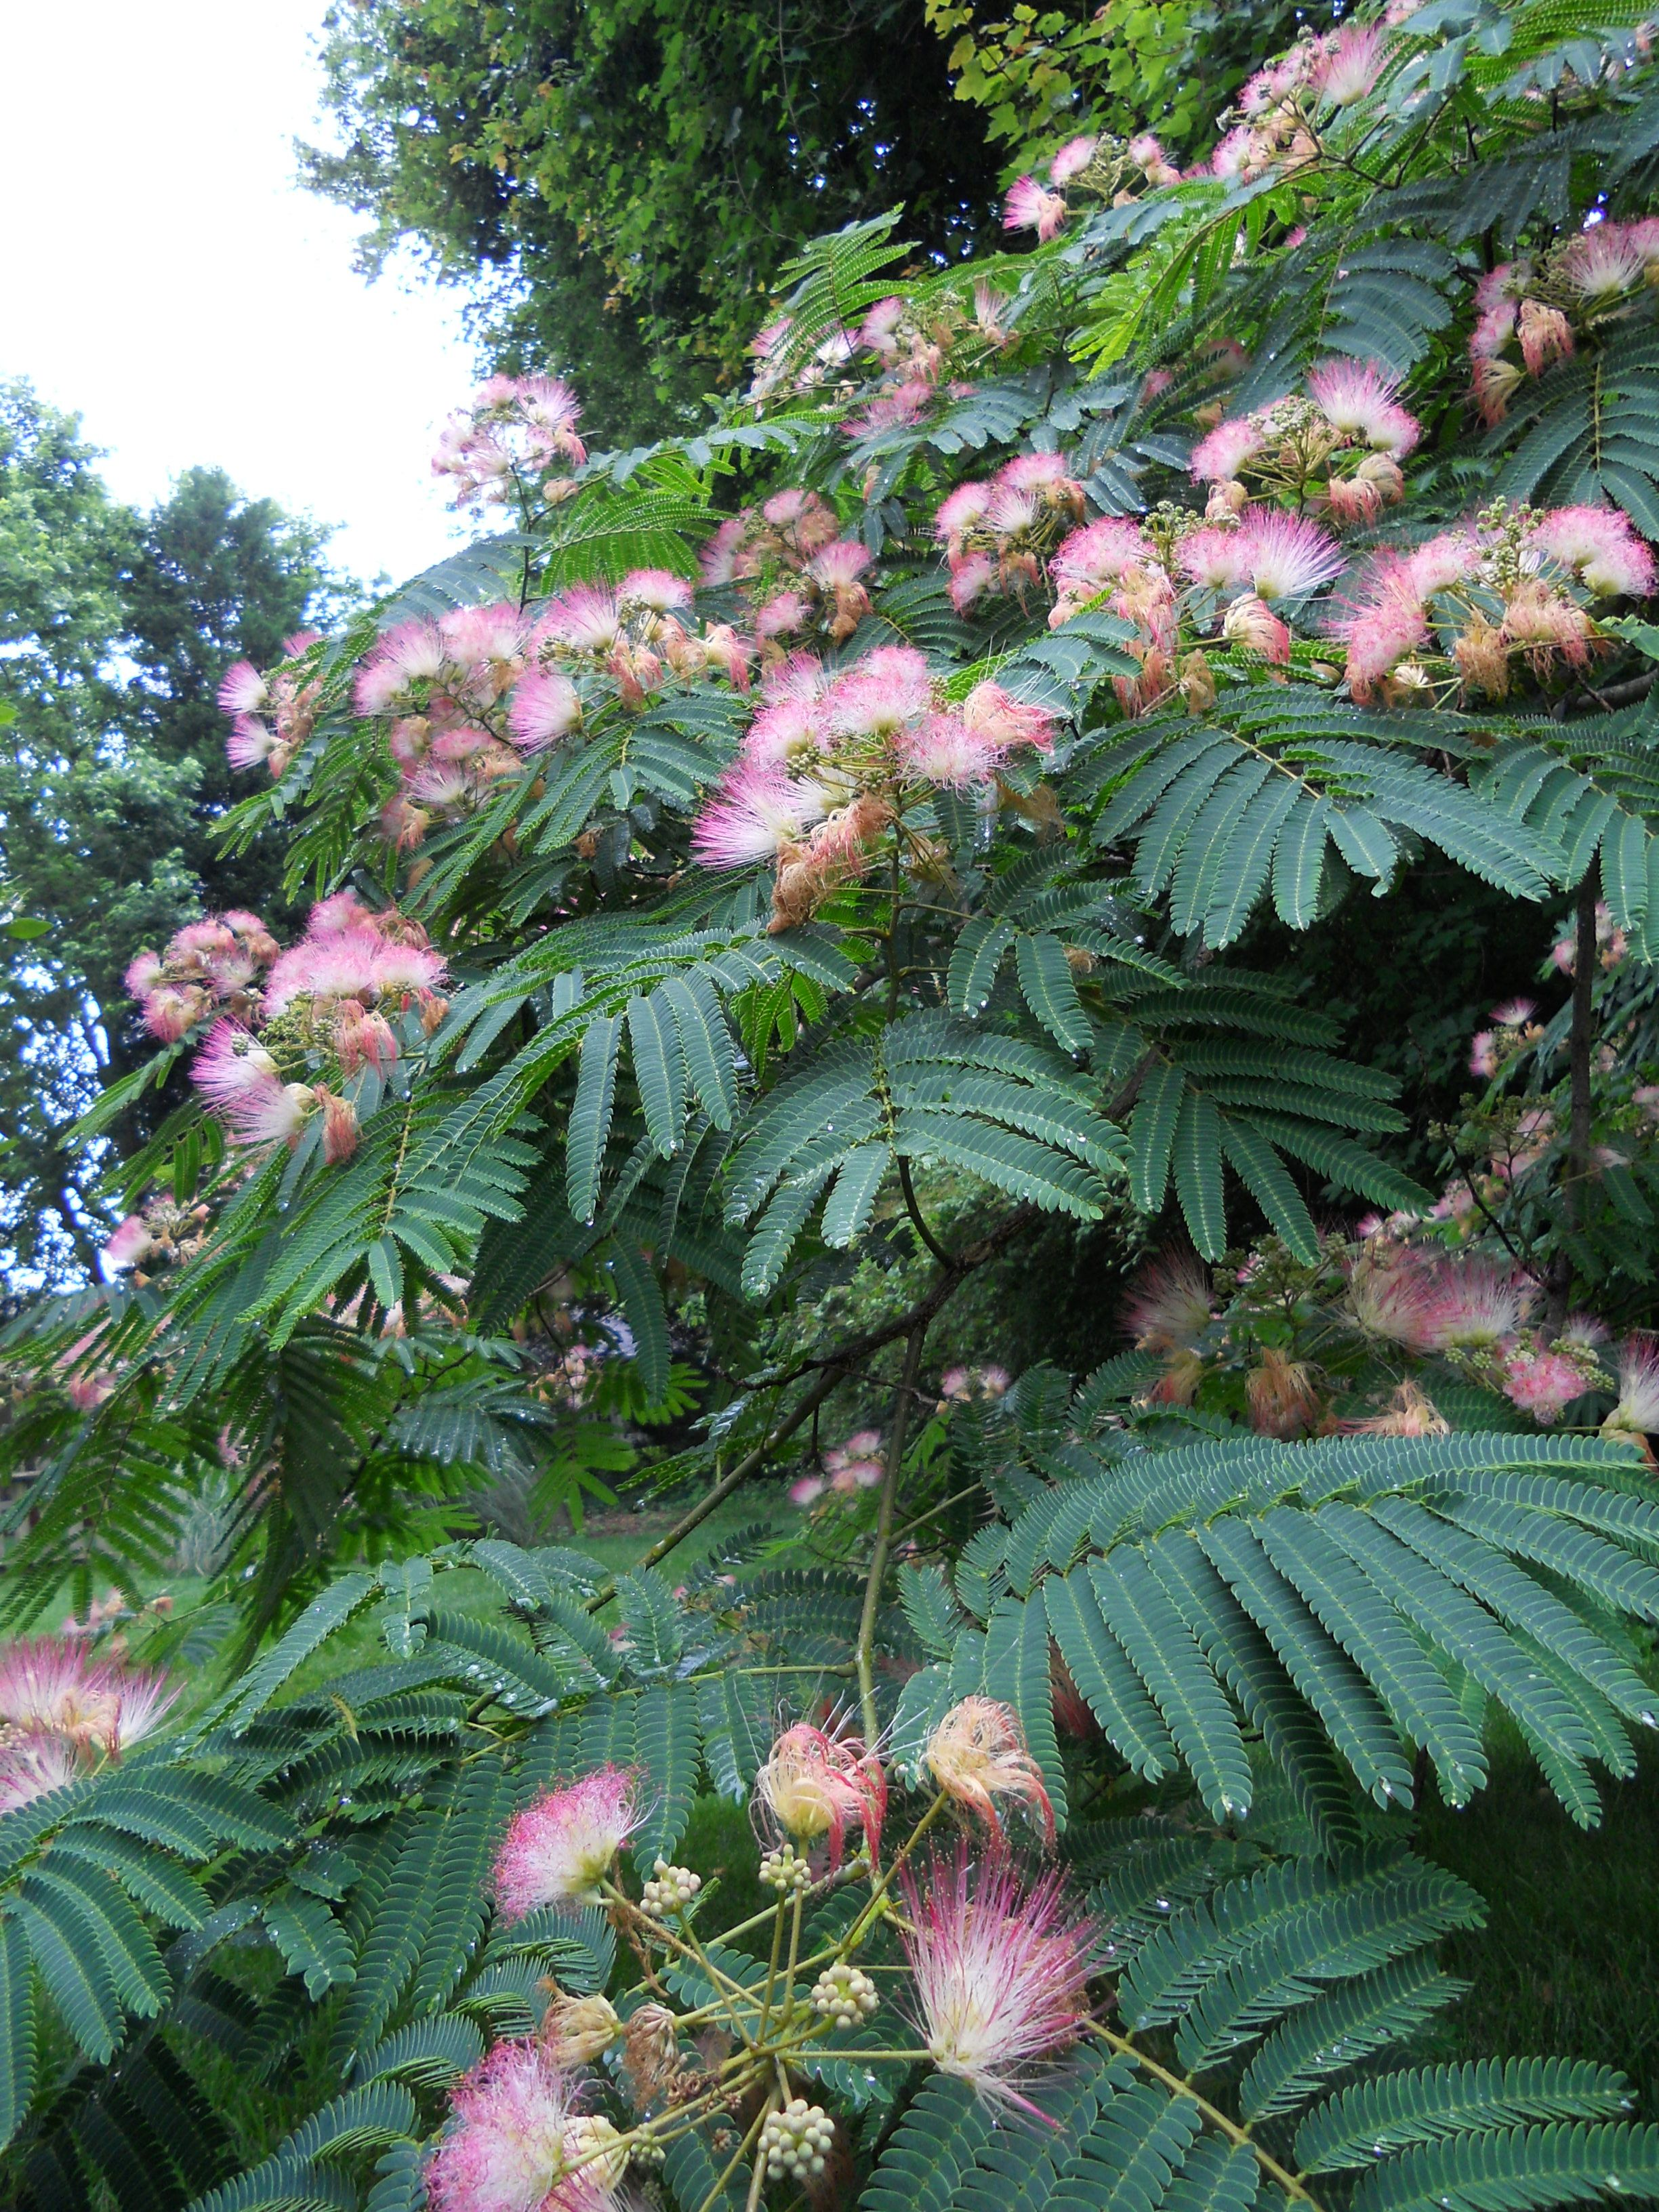 My Favorite Tree Mimosa Tree I Want One In The Front Of My House